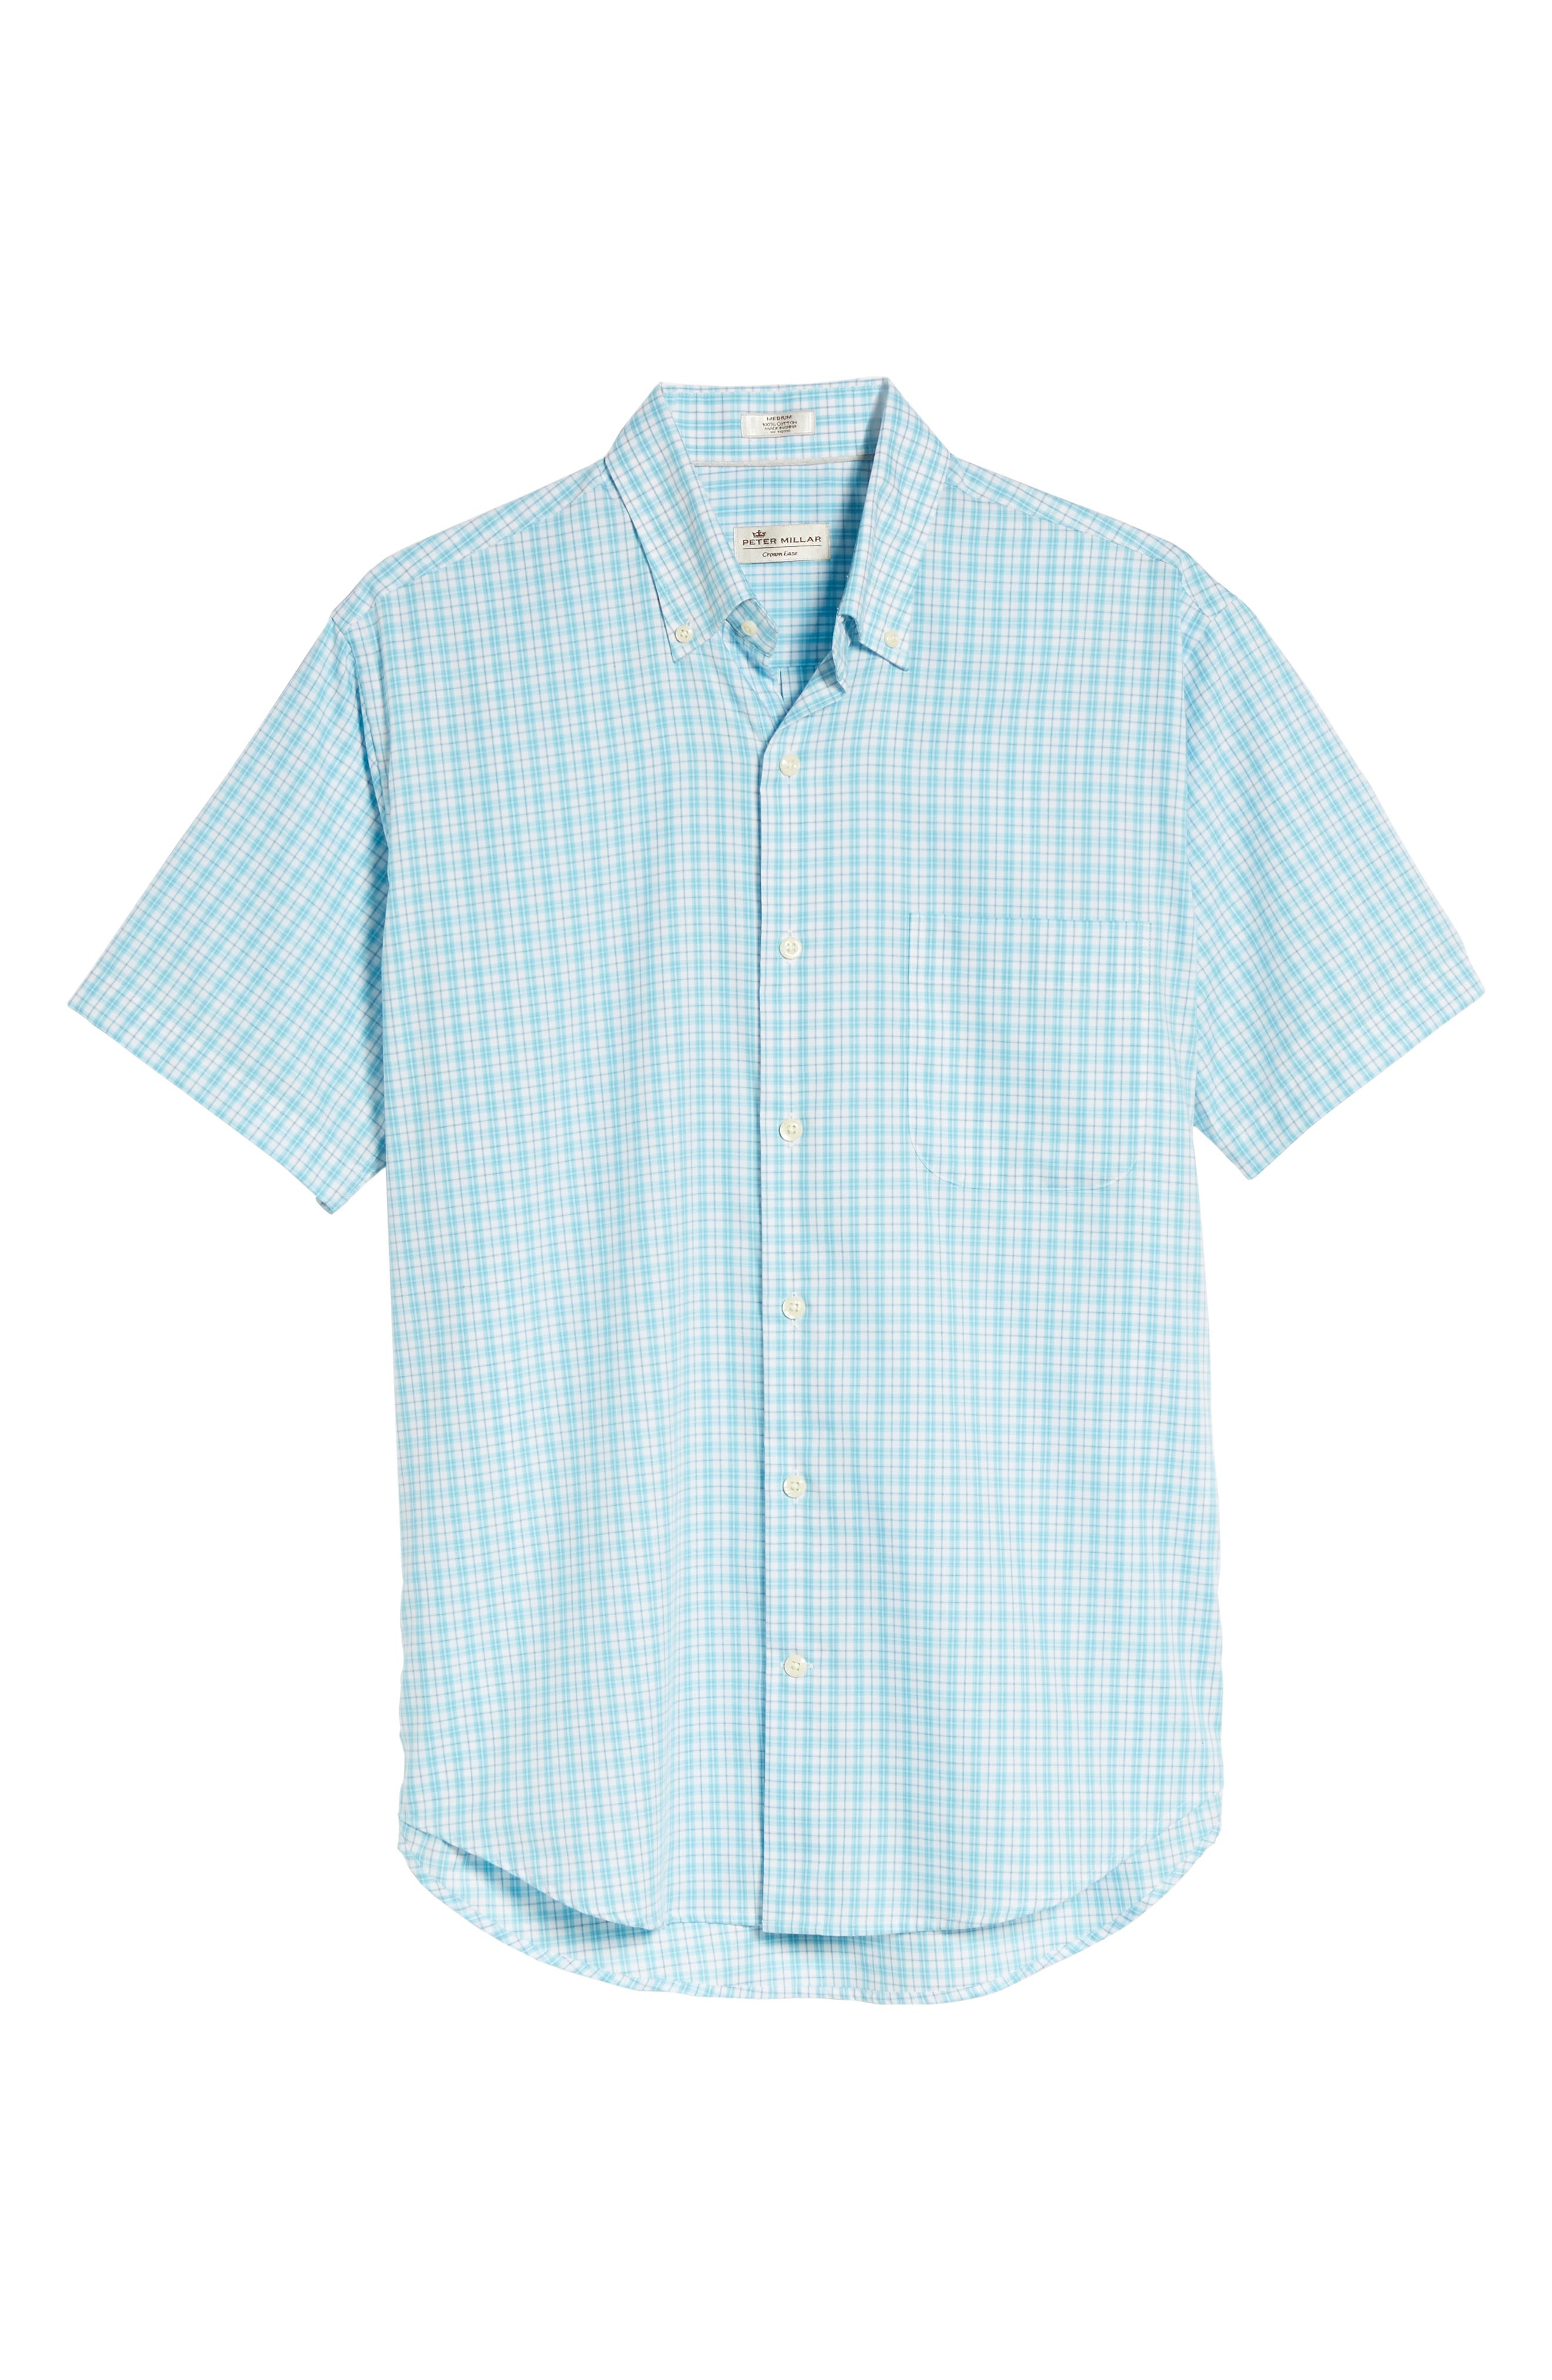 Crown Ease Eventide Check Sport Shirt,                             Alternate thumbnail 6, color,                             BLUE FISH